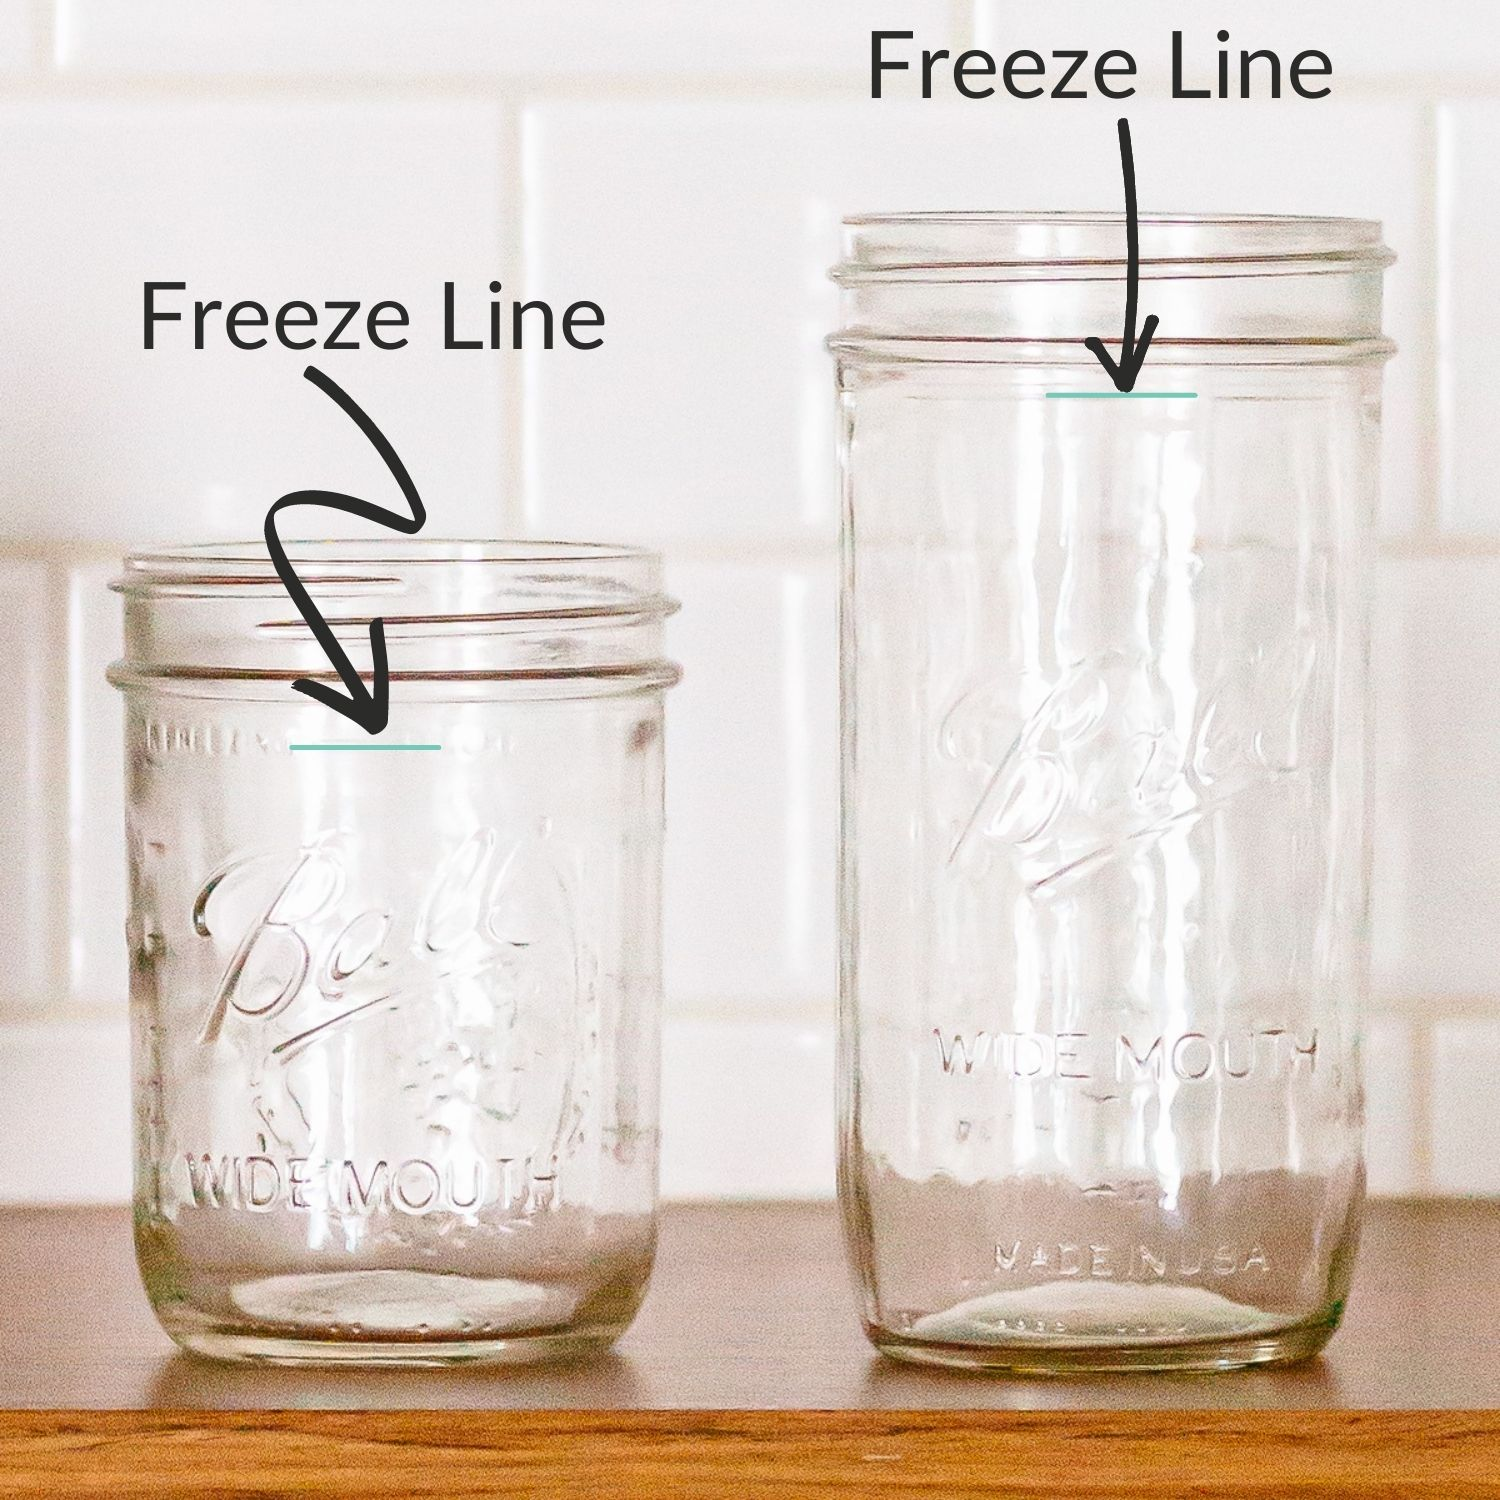 Graphic showing the freeze line on two different mason jars.